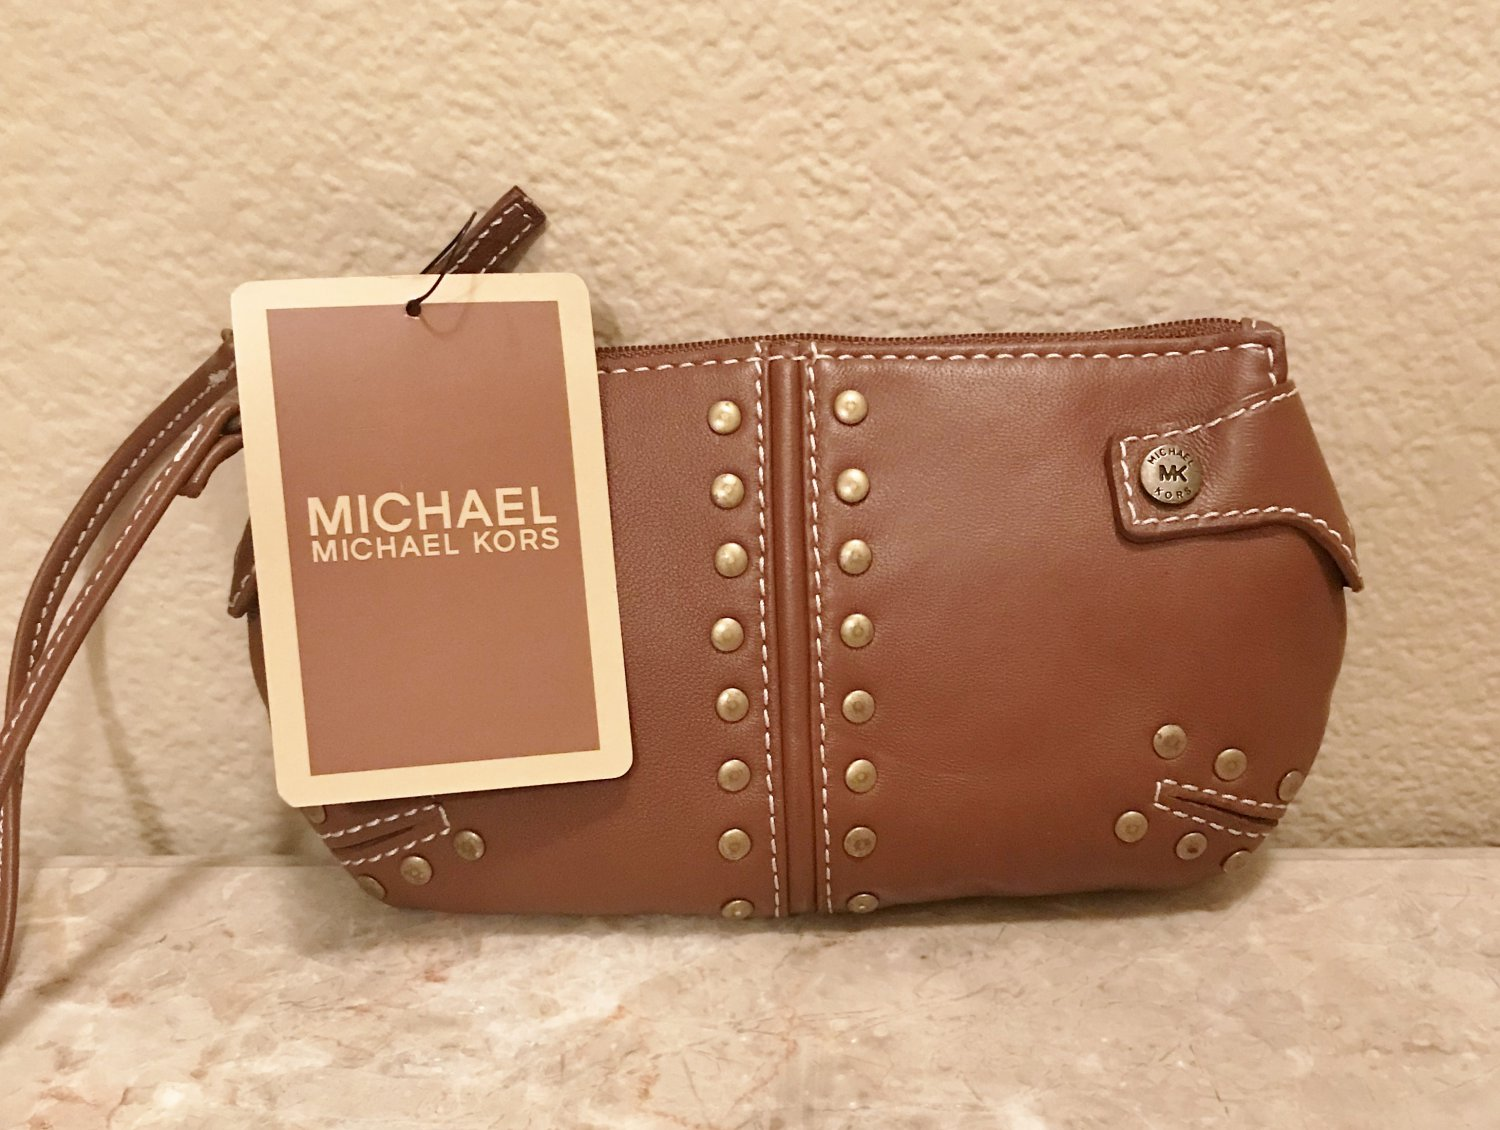 NWT MICHAEL KORS WRISTLET Studded Leather Purse HONEY BROWN Auth